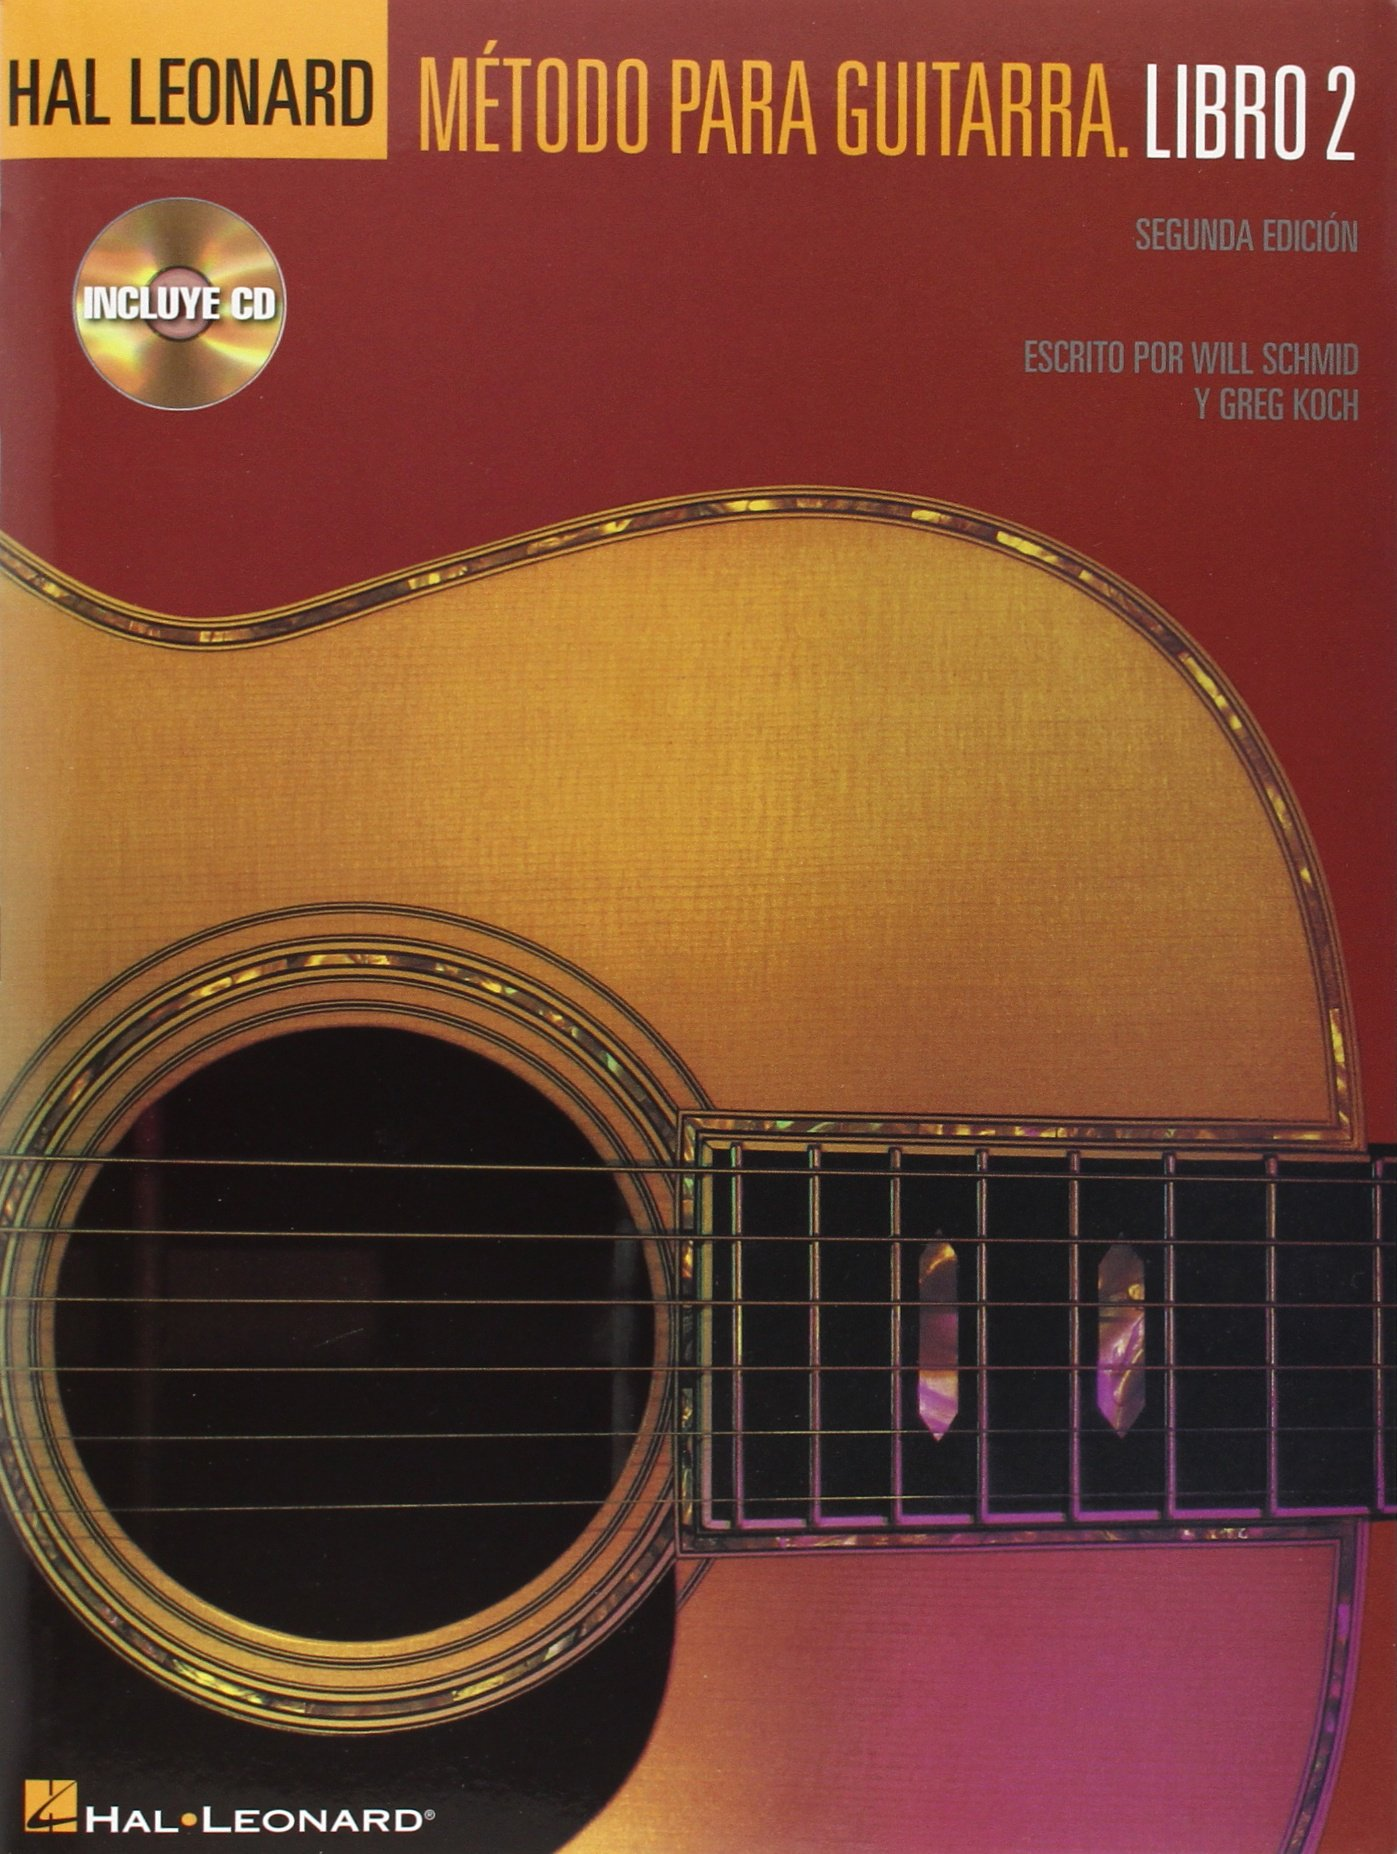 Hal Leonard Metodo Para Guitarra - Libro 2: Spanish Edition Book/CD Pack Paperback – January 1, 2005